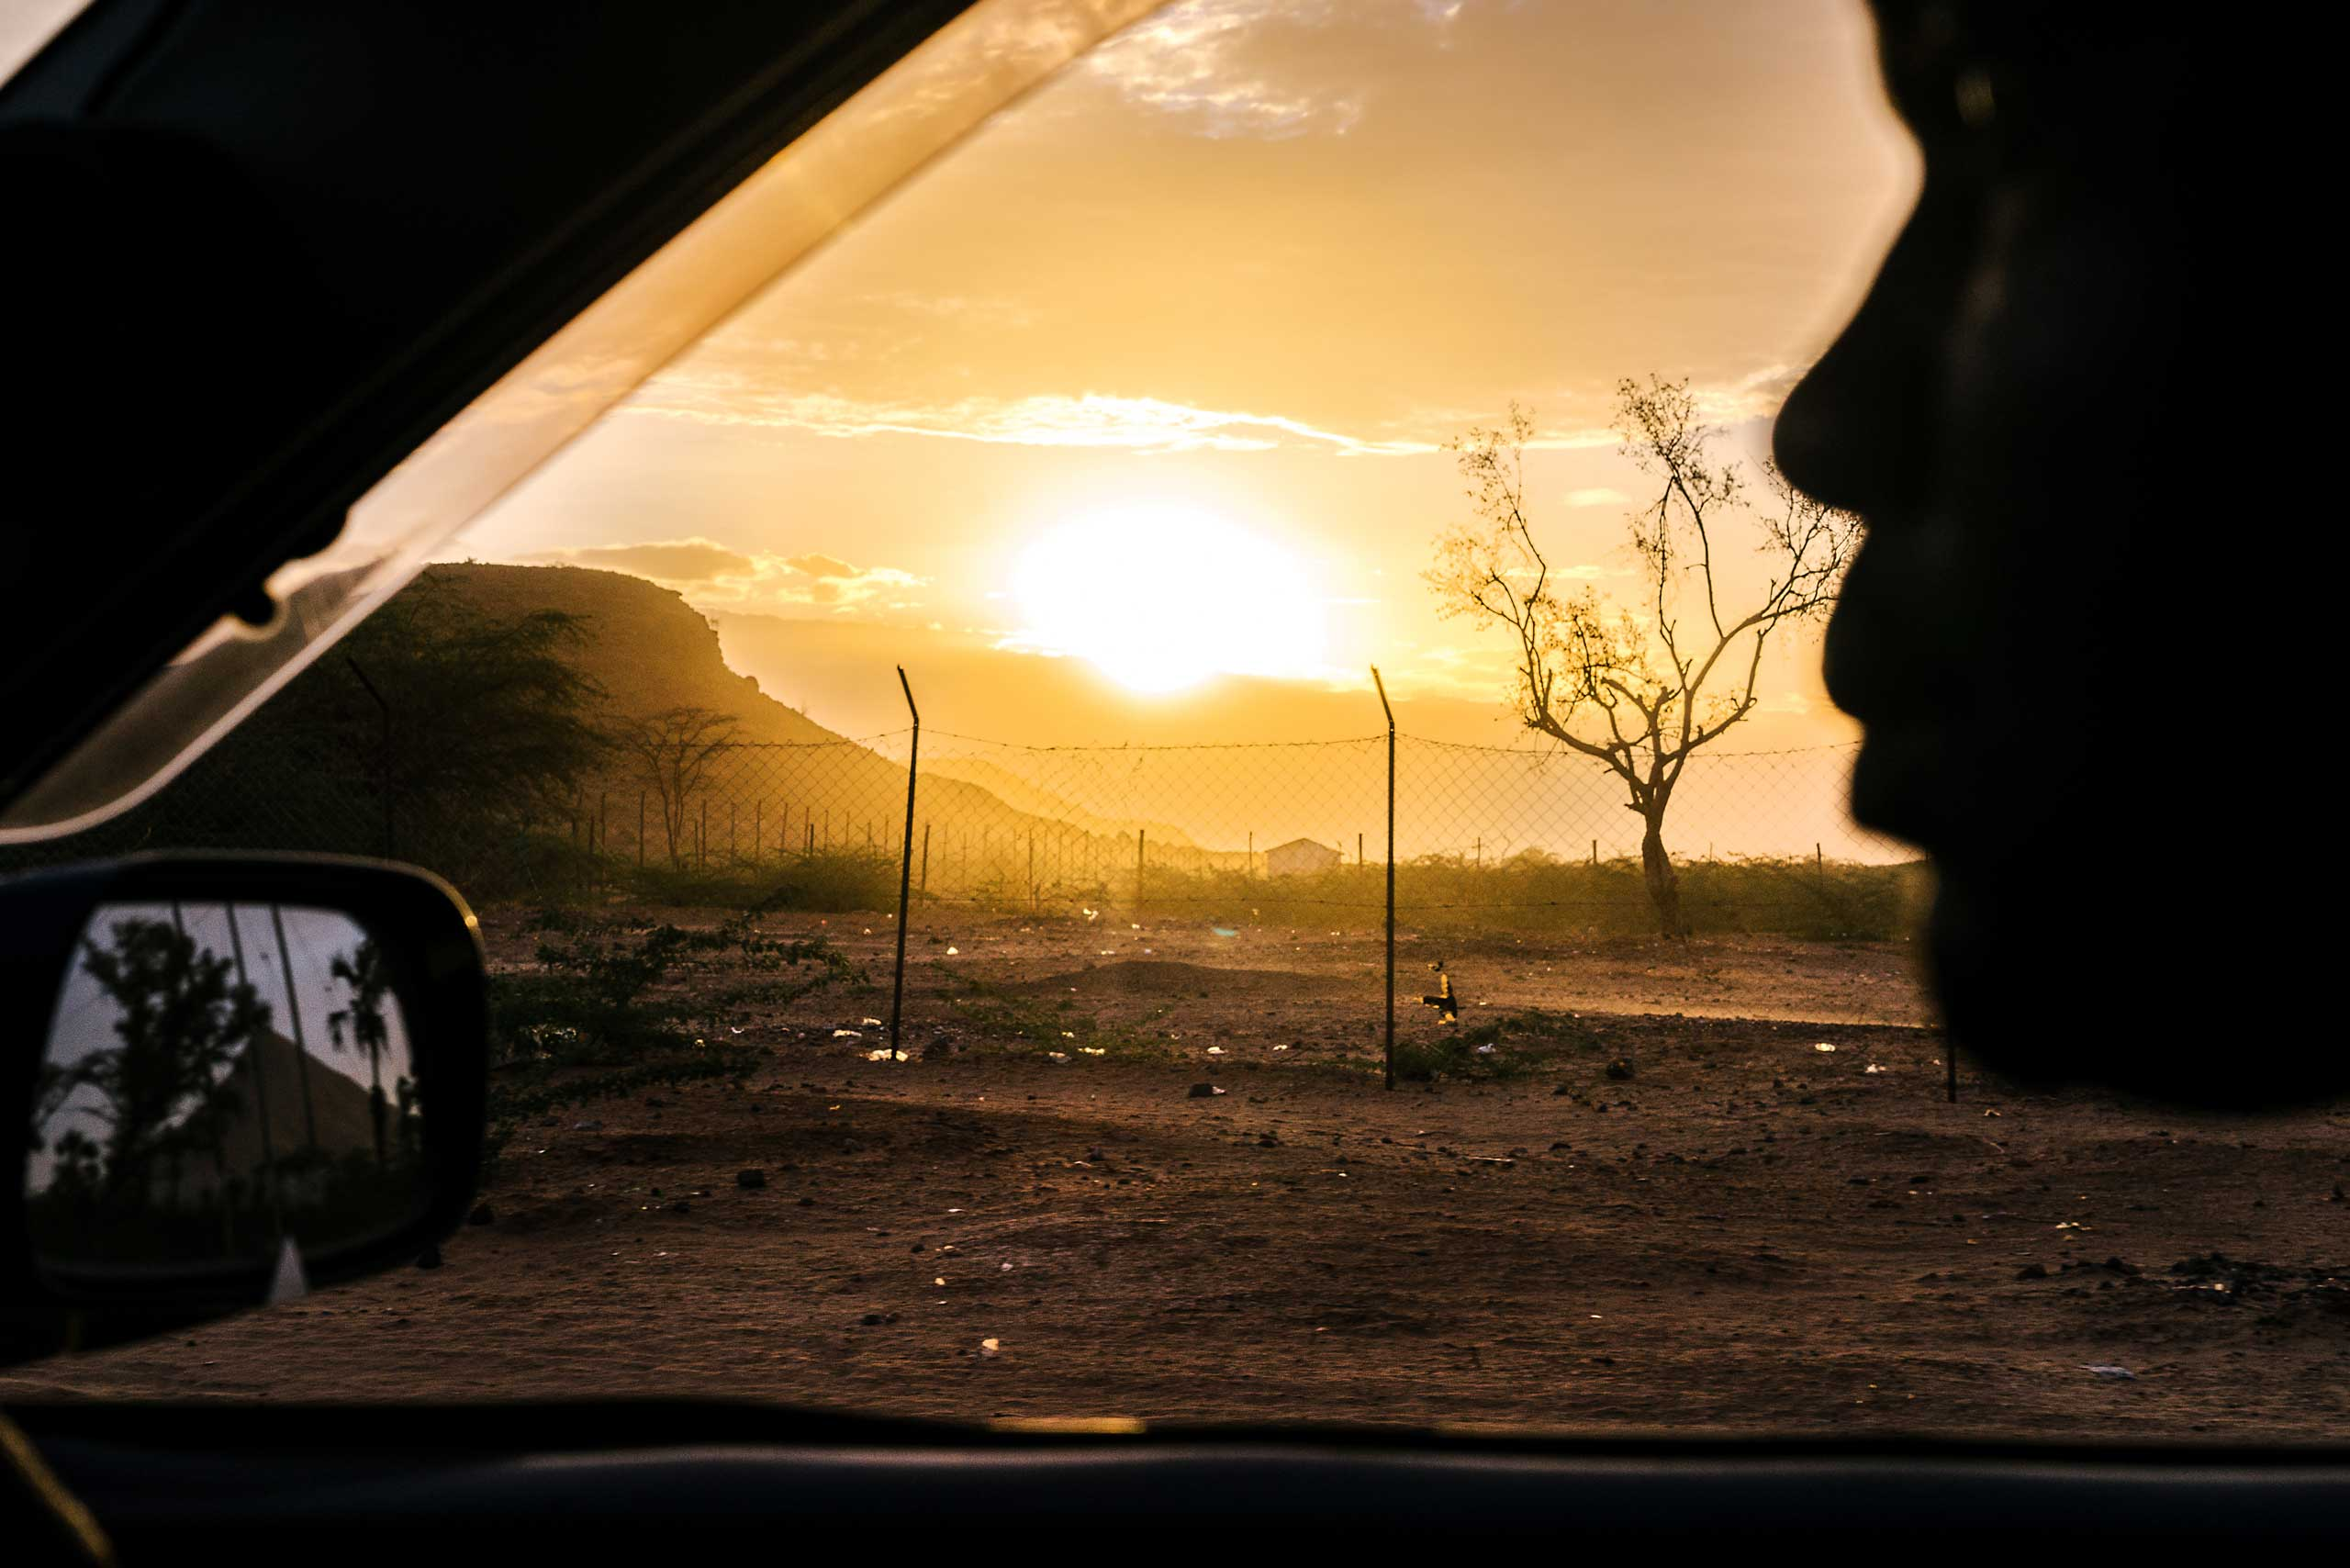 The sun sets over Lodwar in northwestern Kenya near where the Kakuma Refugee Camp is located. Kakuma is home to 182,000 refugees from all over the region.